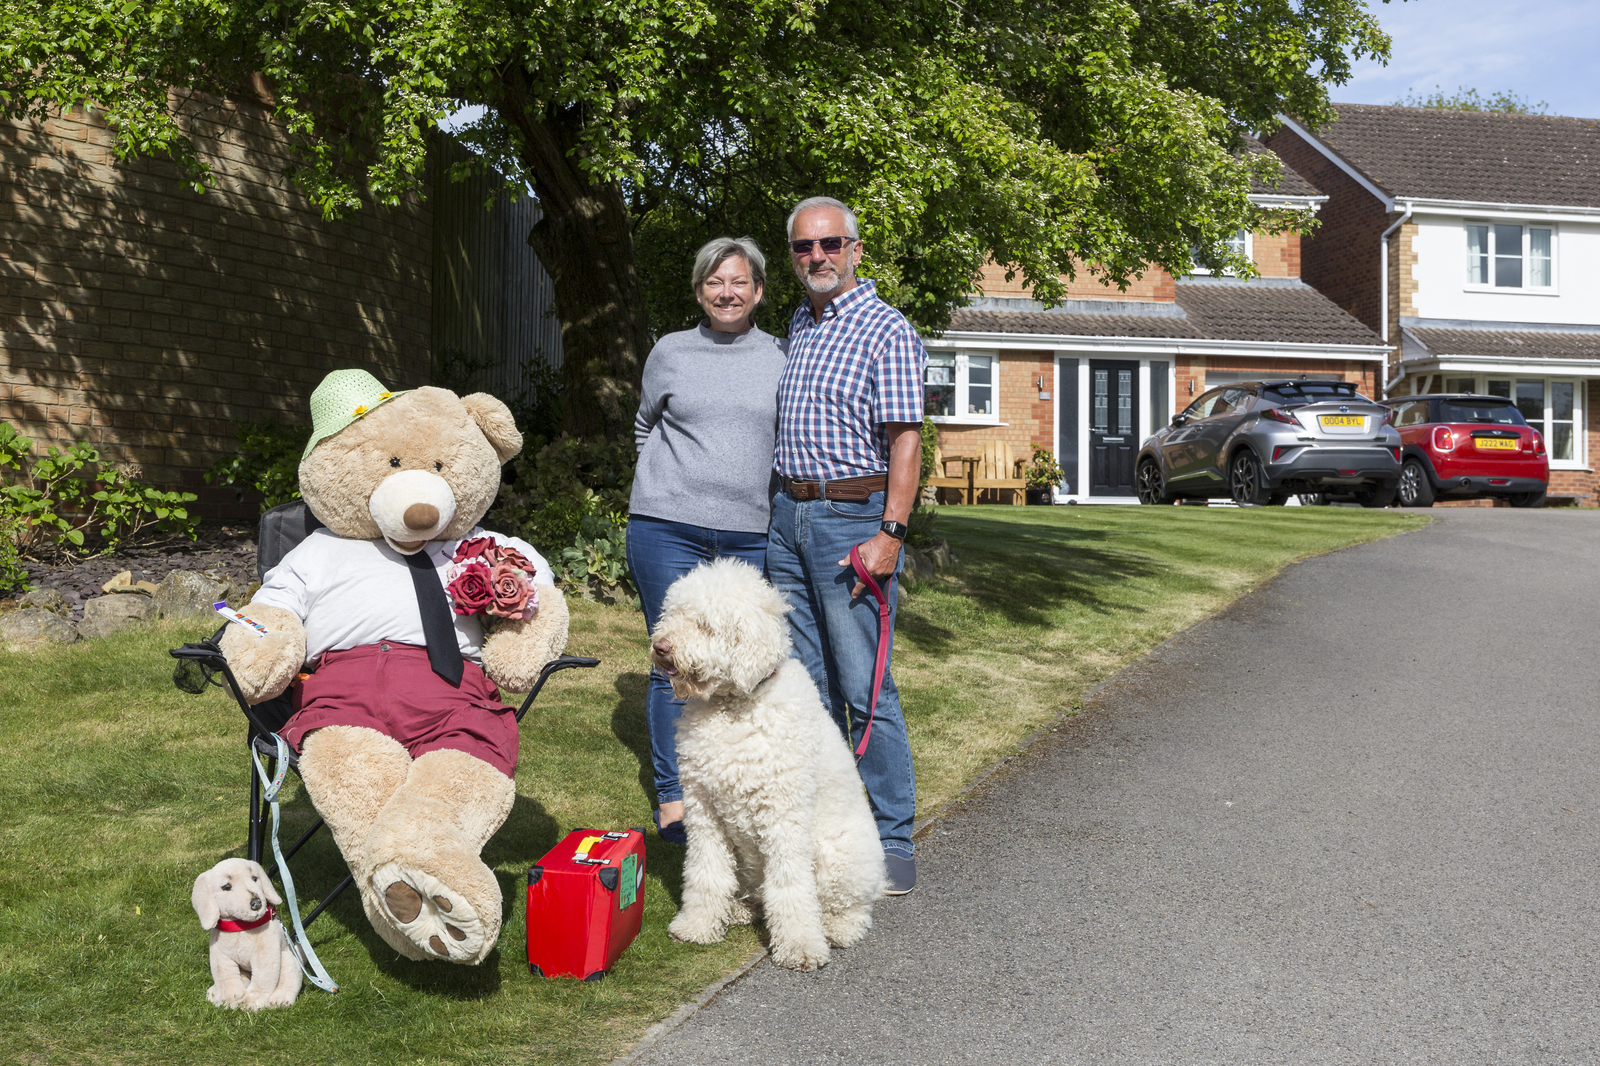 17 May 2020: Margaret and Bill and Barny the Dog, with their bear, in Shotley Bridge